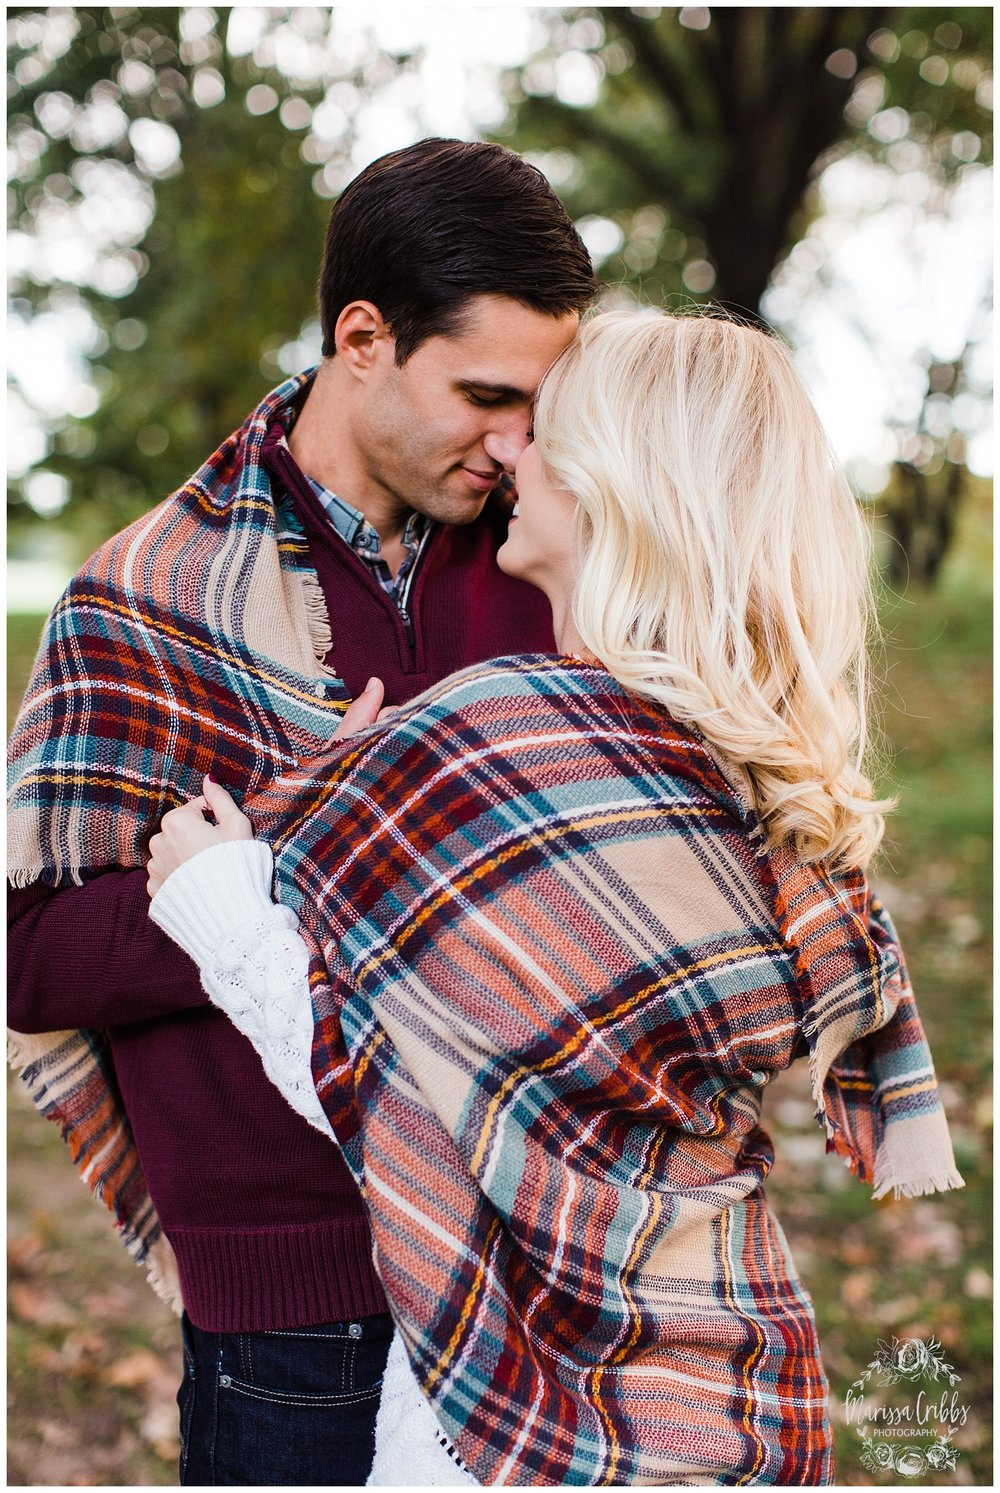 CLOE & GABE LIBERTY MEMORIAL ENGAGEMENT | MARISSA CRIBBS PHOTOGRAPHY | LOOSE PARK ENGAGEMENT_3463.jpg